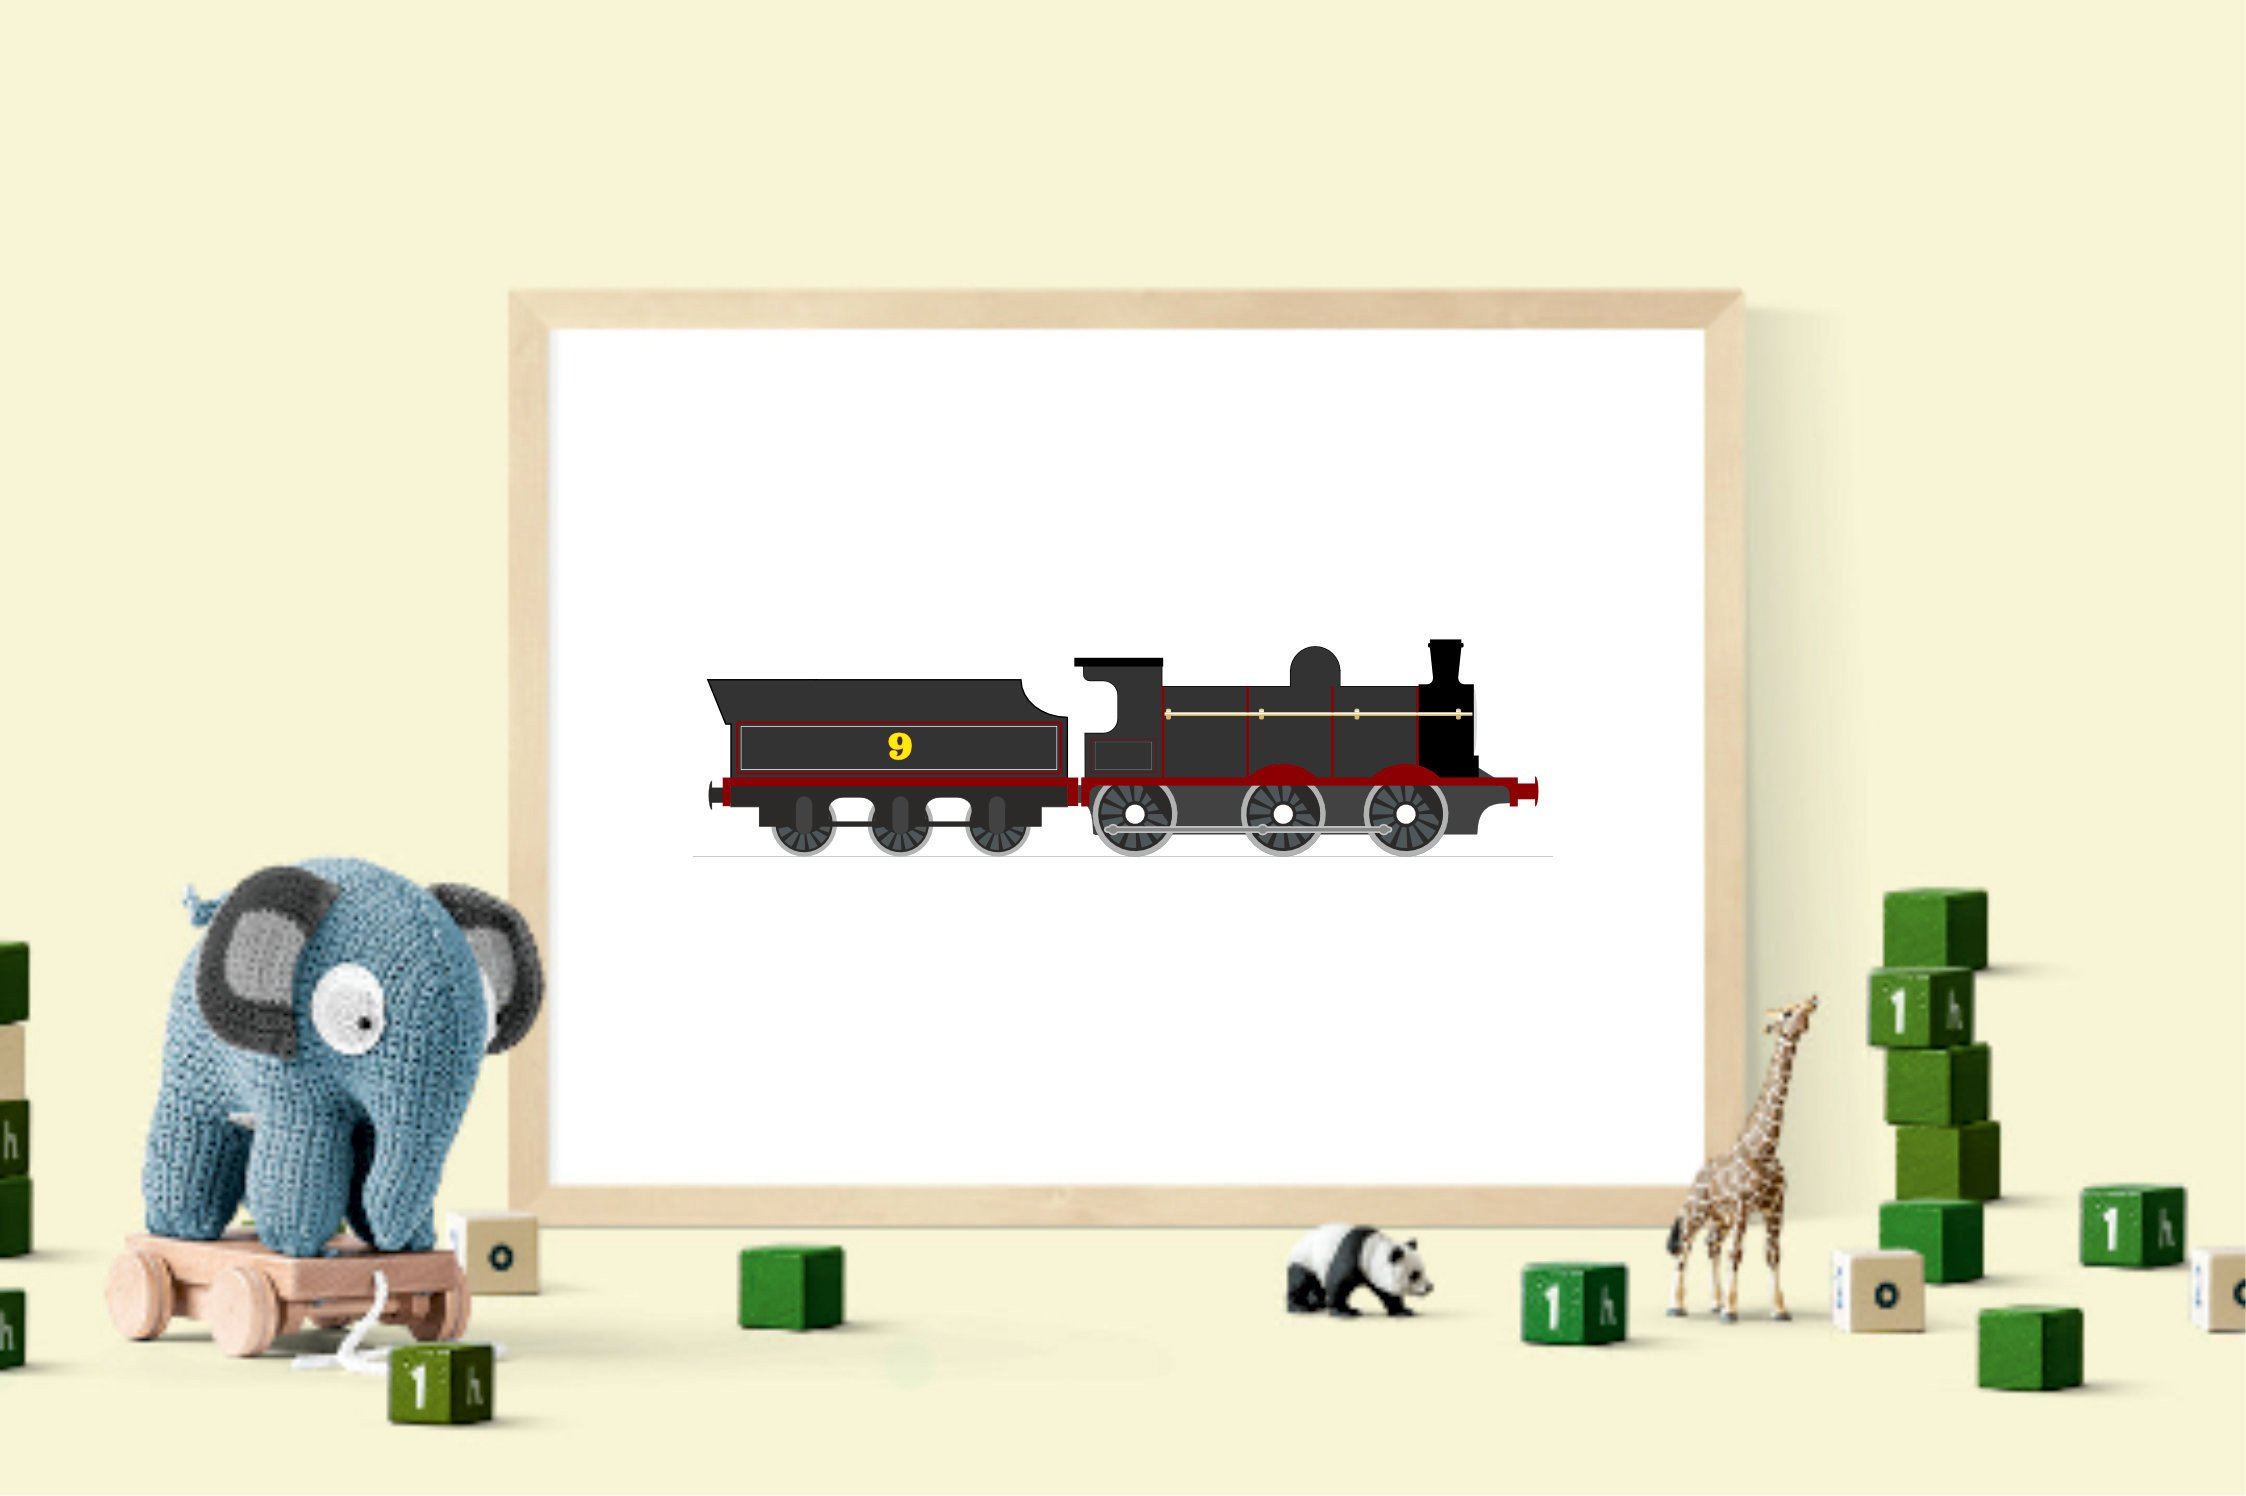 Thomas the Train Bedroom Decor Best Of Train Decor Thomas Party Thomas the Train Print Train Wall Art Donald Print Thomas and Friends Boy Bedroom Print Boy Room Wall Art